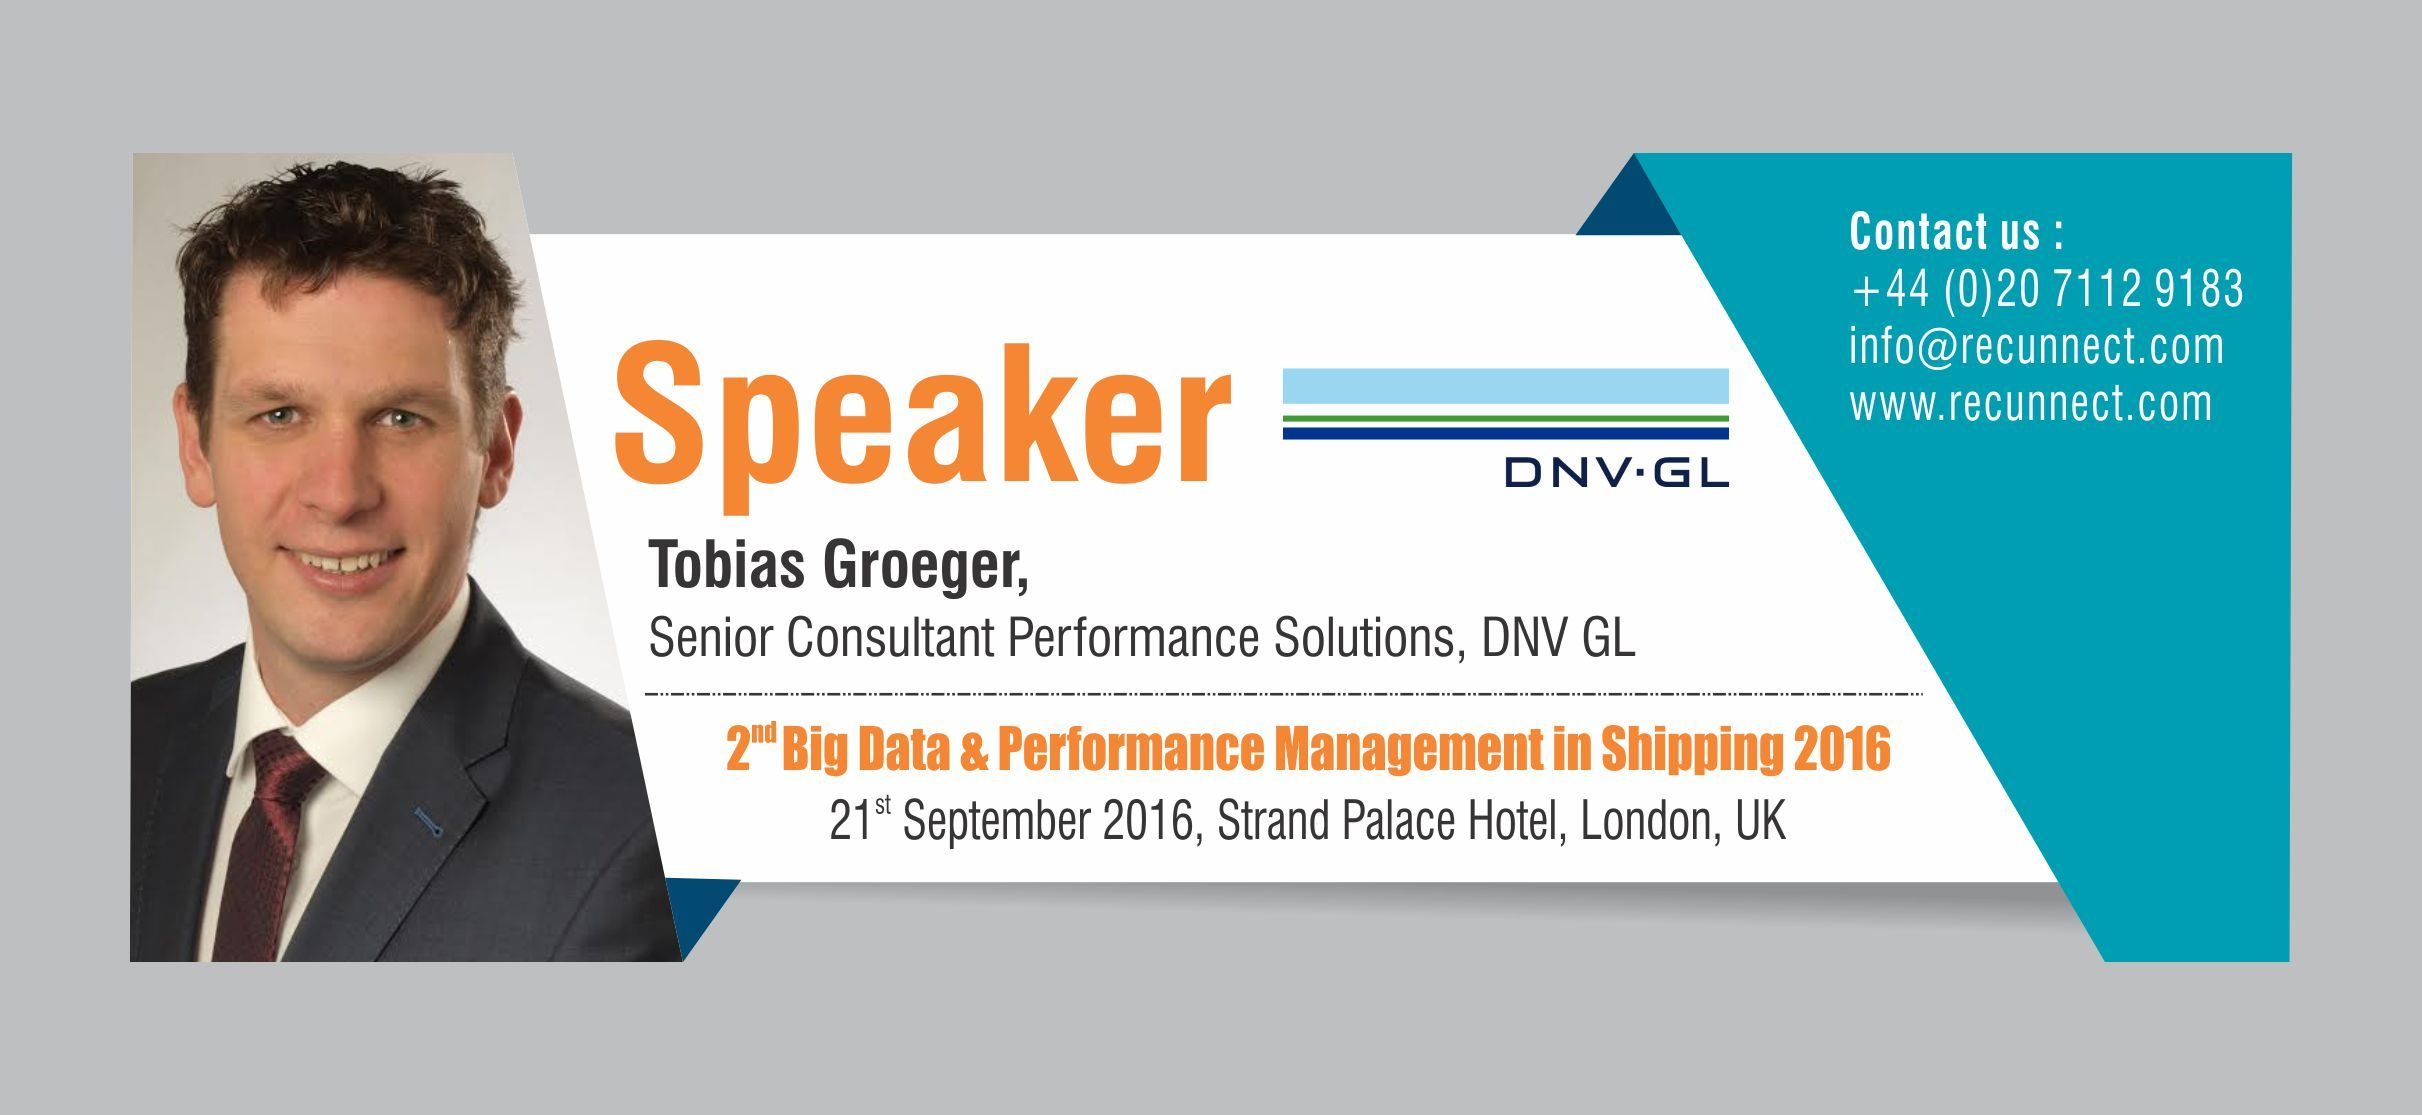 """BigData - We are Delighted to announce and welcome our Speaker """"Tobias Groeger"""" joins the panel at RecunnectLtd's 2nd Big Data and Performance Management in Shipping 2016. Standard Registration now live £950+VAT (3 for the price of 2 - Book 2 delegates and get the third pass complementary) Book at http://www.recunnect.com/events/maritime-events/2nd-big-data-in-shipping-2016/registration/ now to save £50 with voucher code SAR001."""